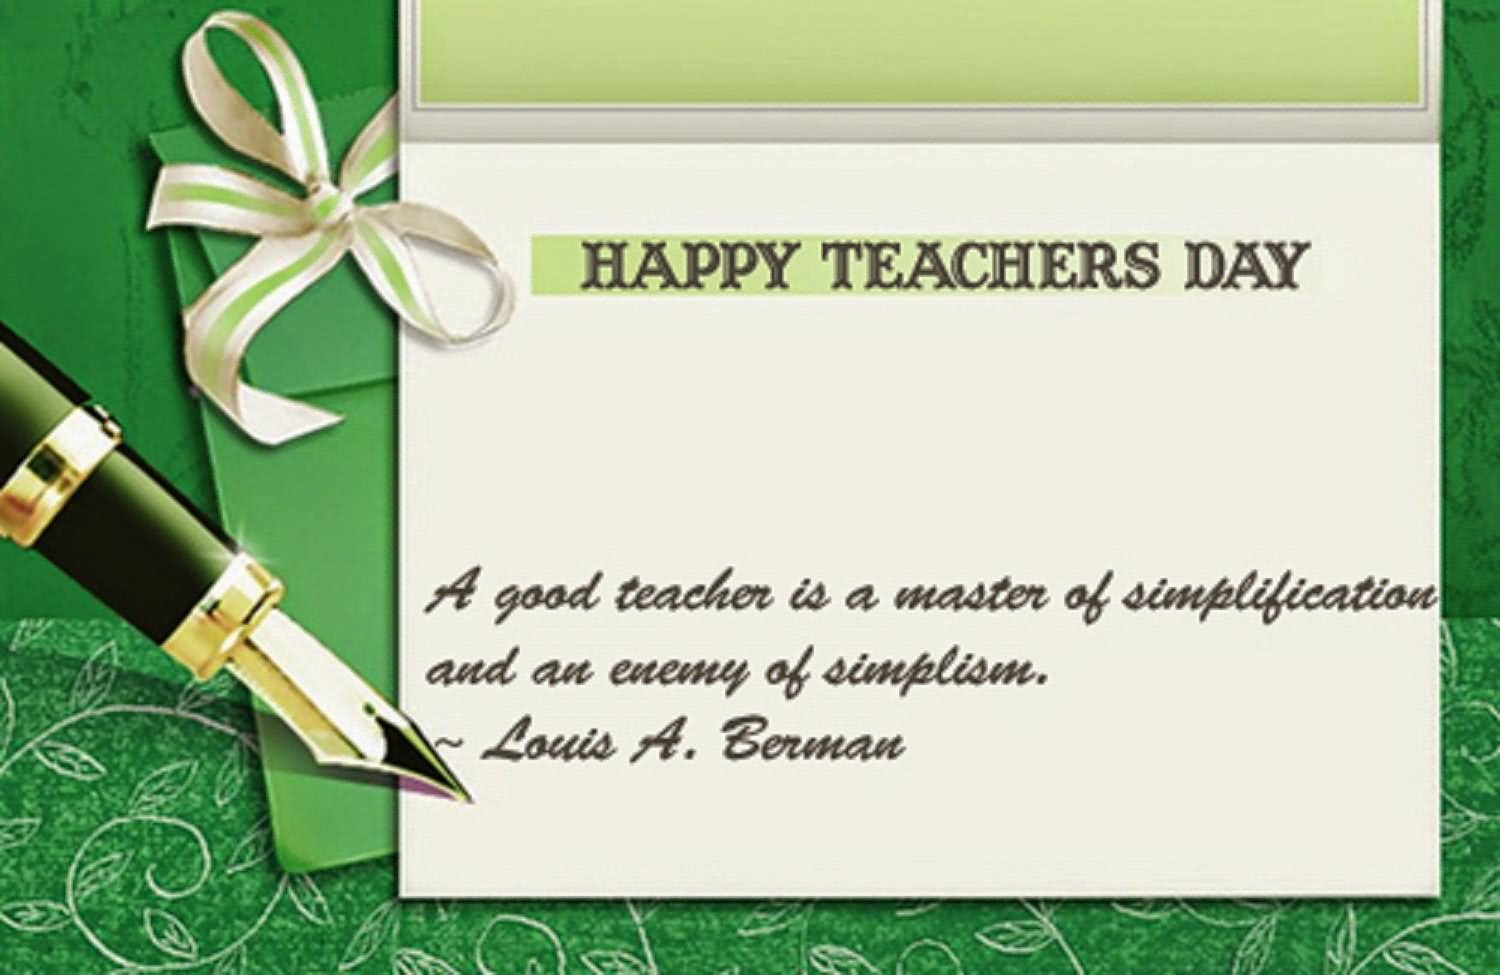 Teachers day card how to make a homemade teachers day card how to make handmade greeting cards for teachers day kristyandbryce Image collections